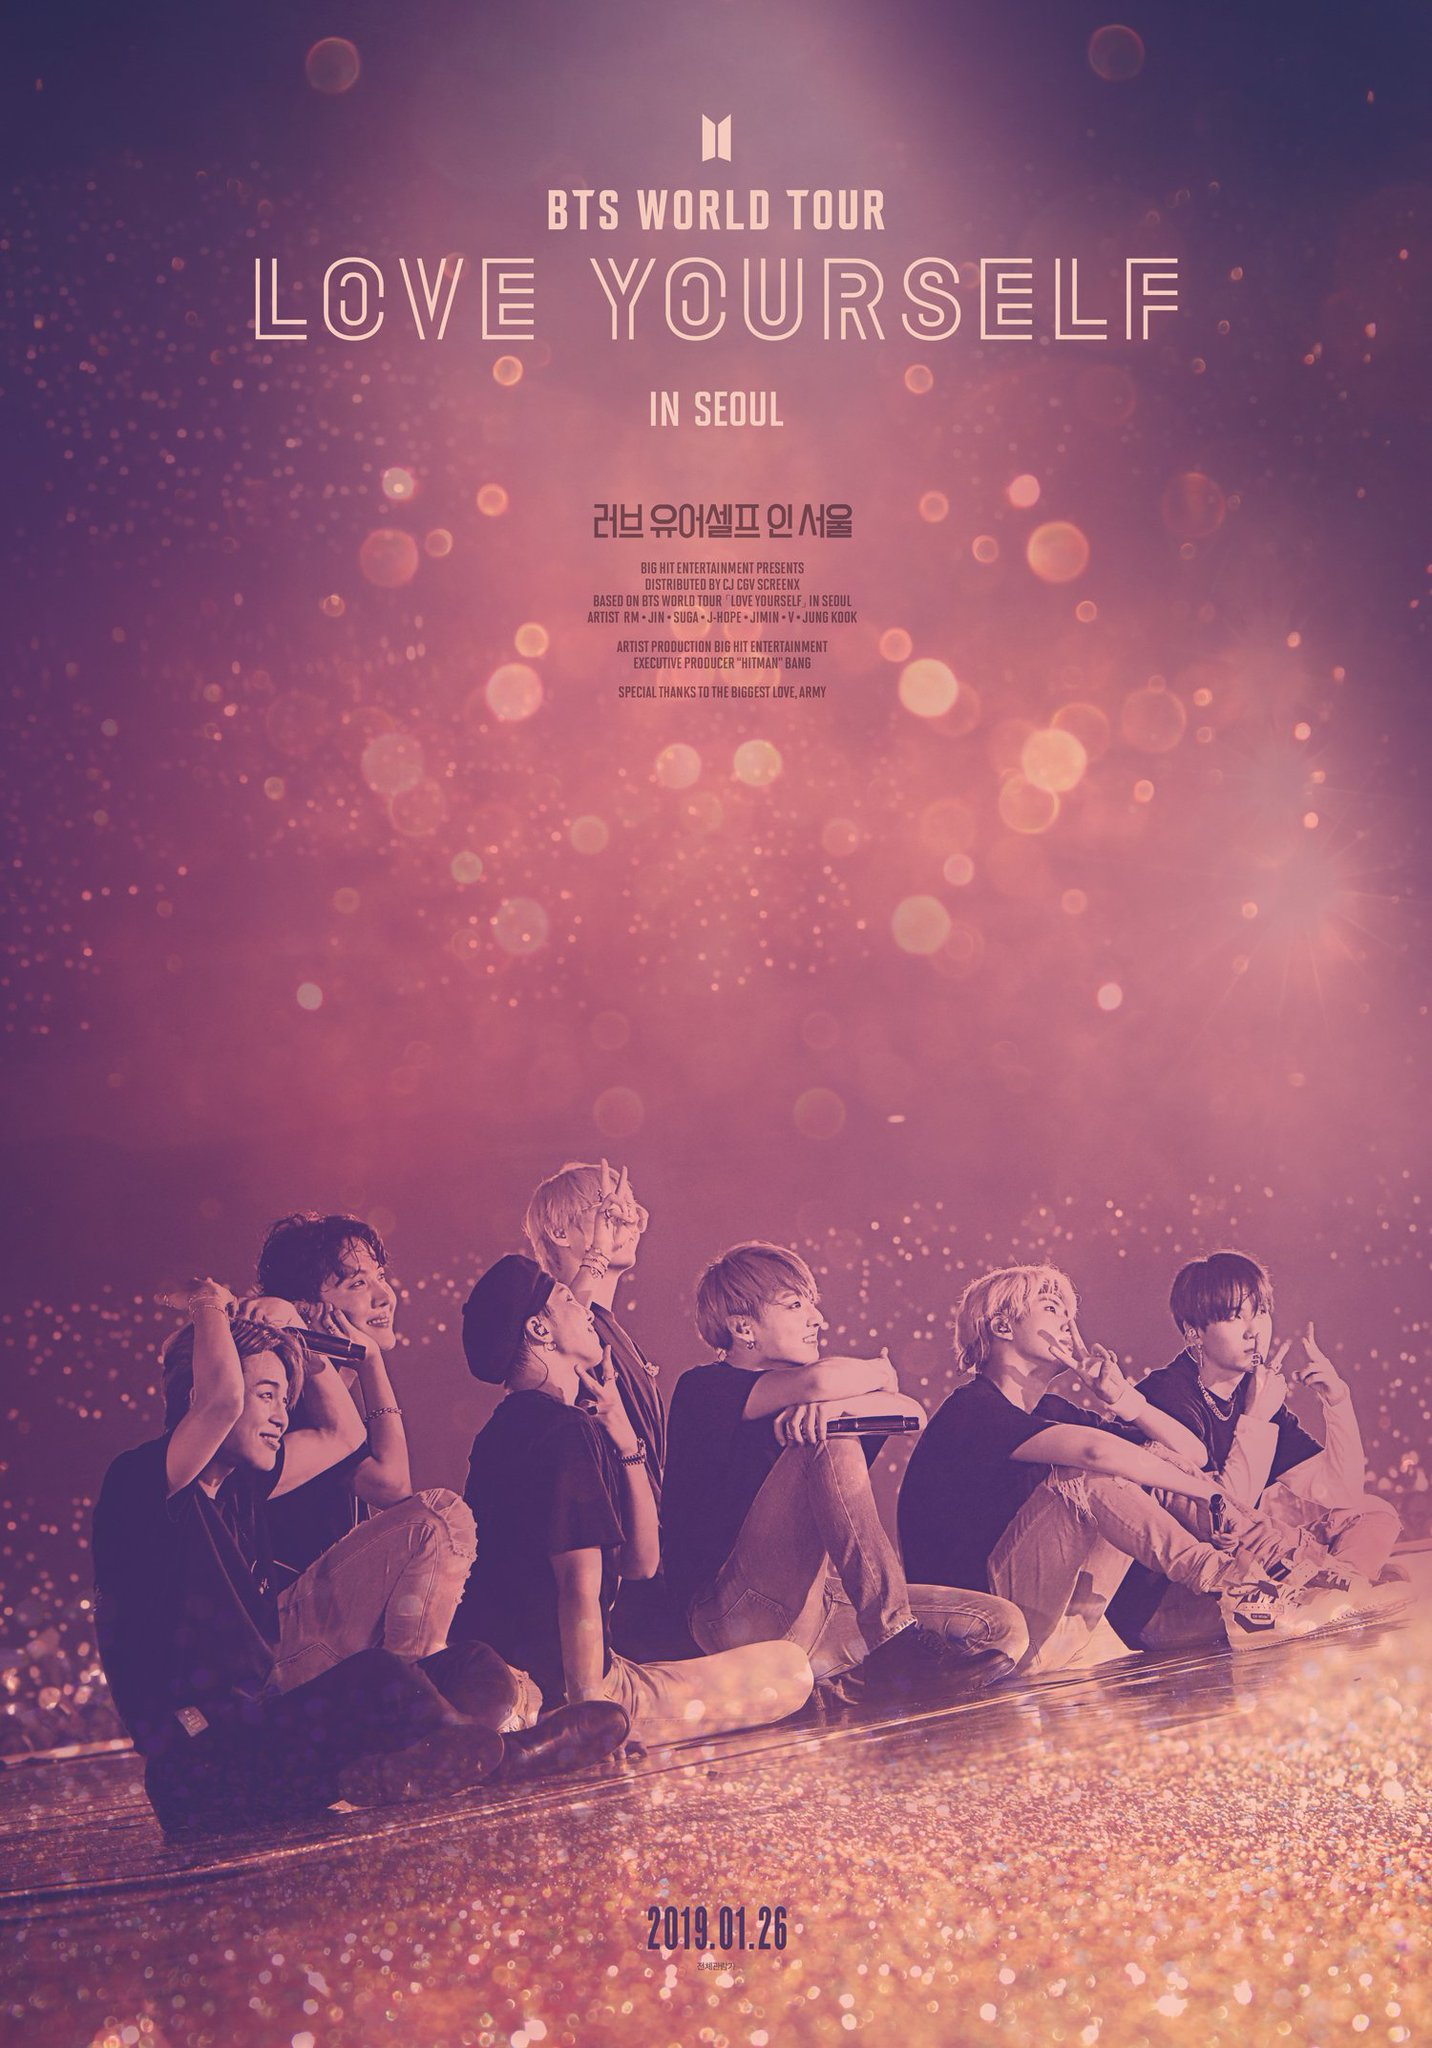 Love Yourself Seoul Poster bts 41948532 1432 2048